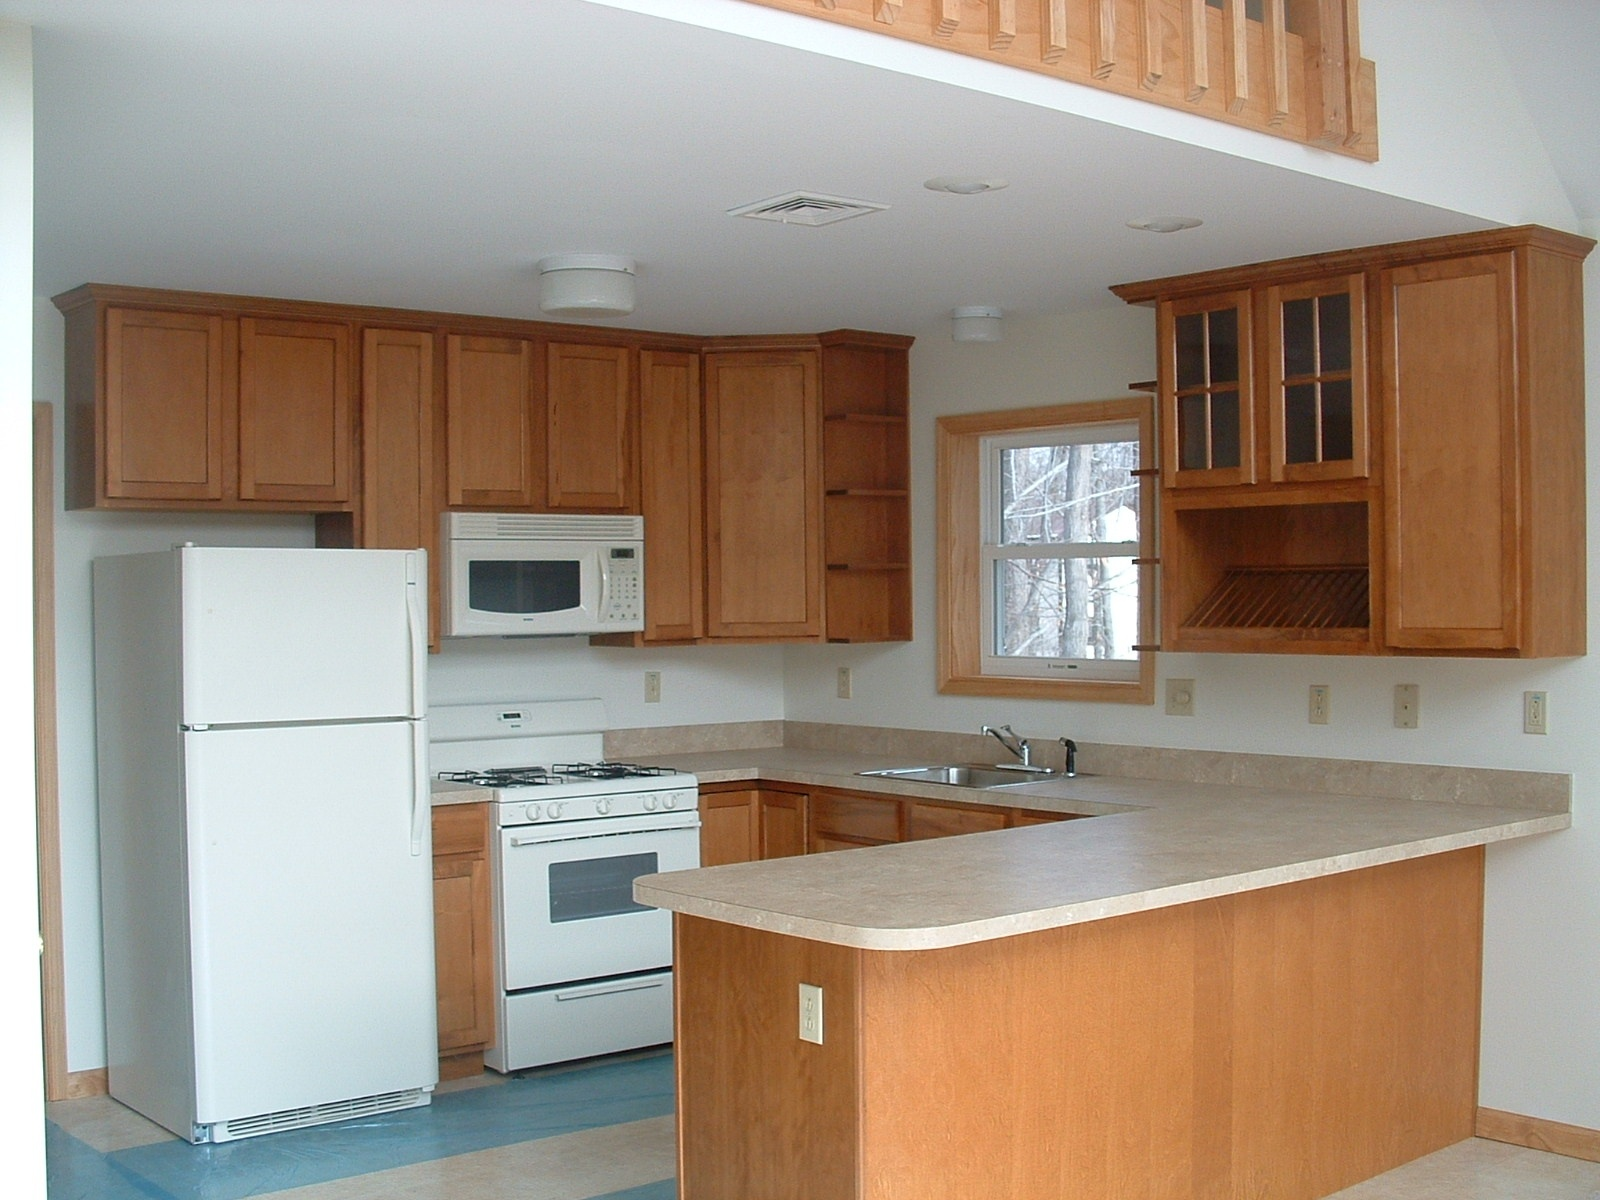 1503_kitchen.jpg